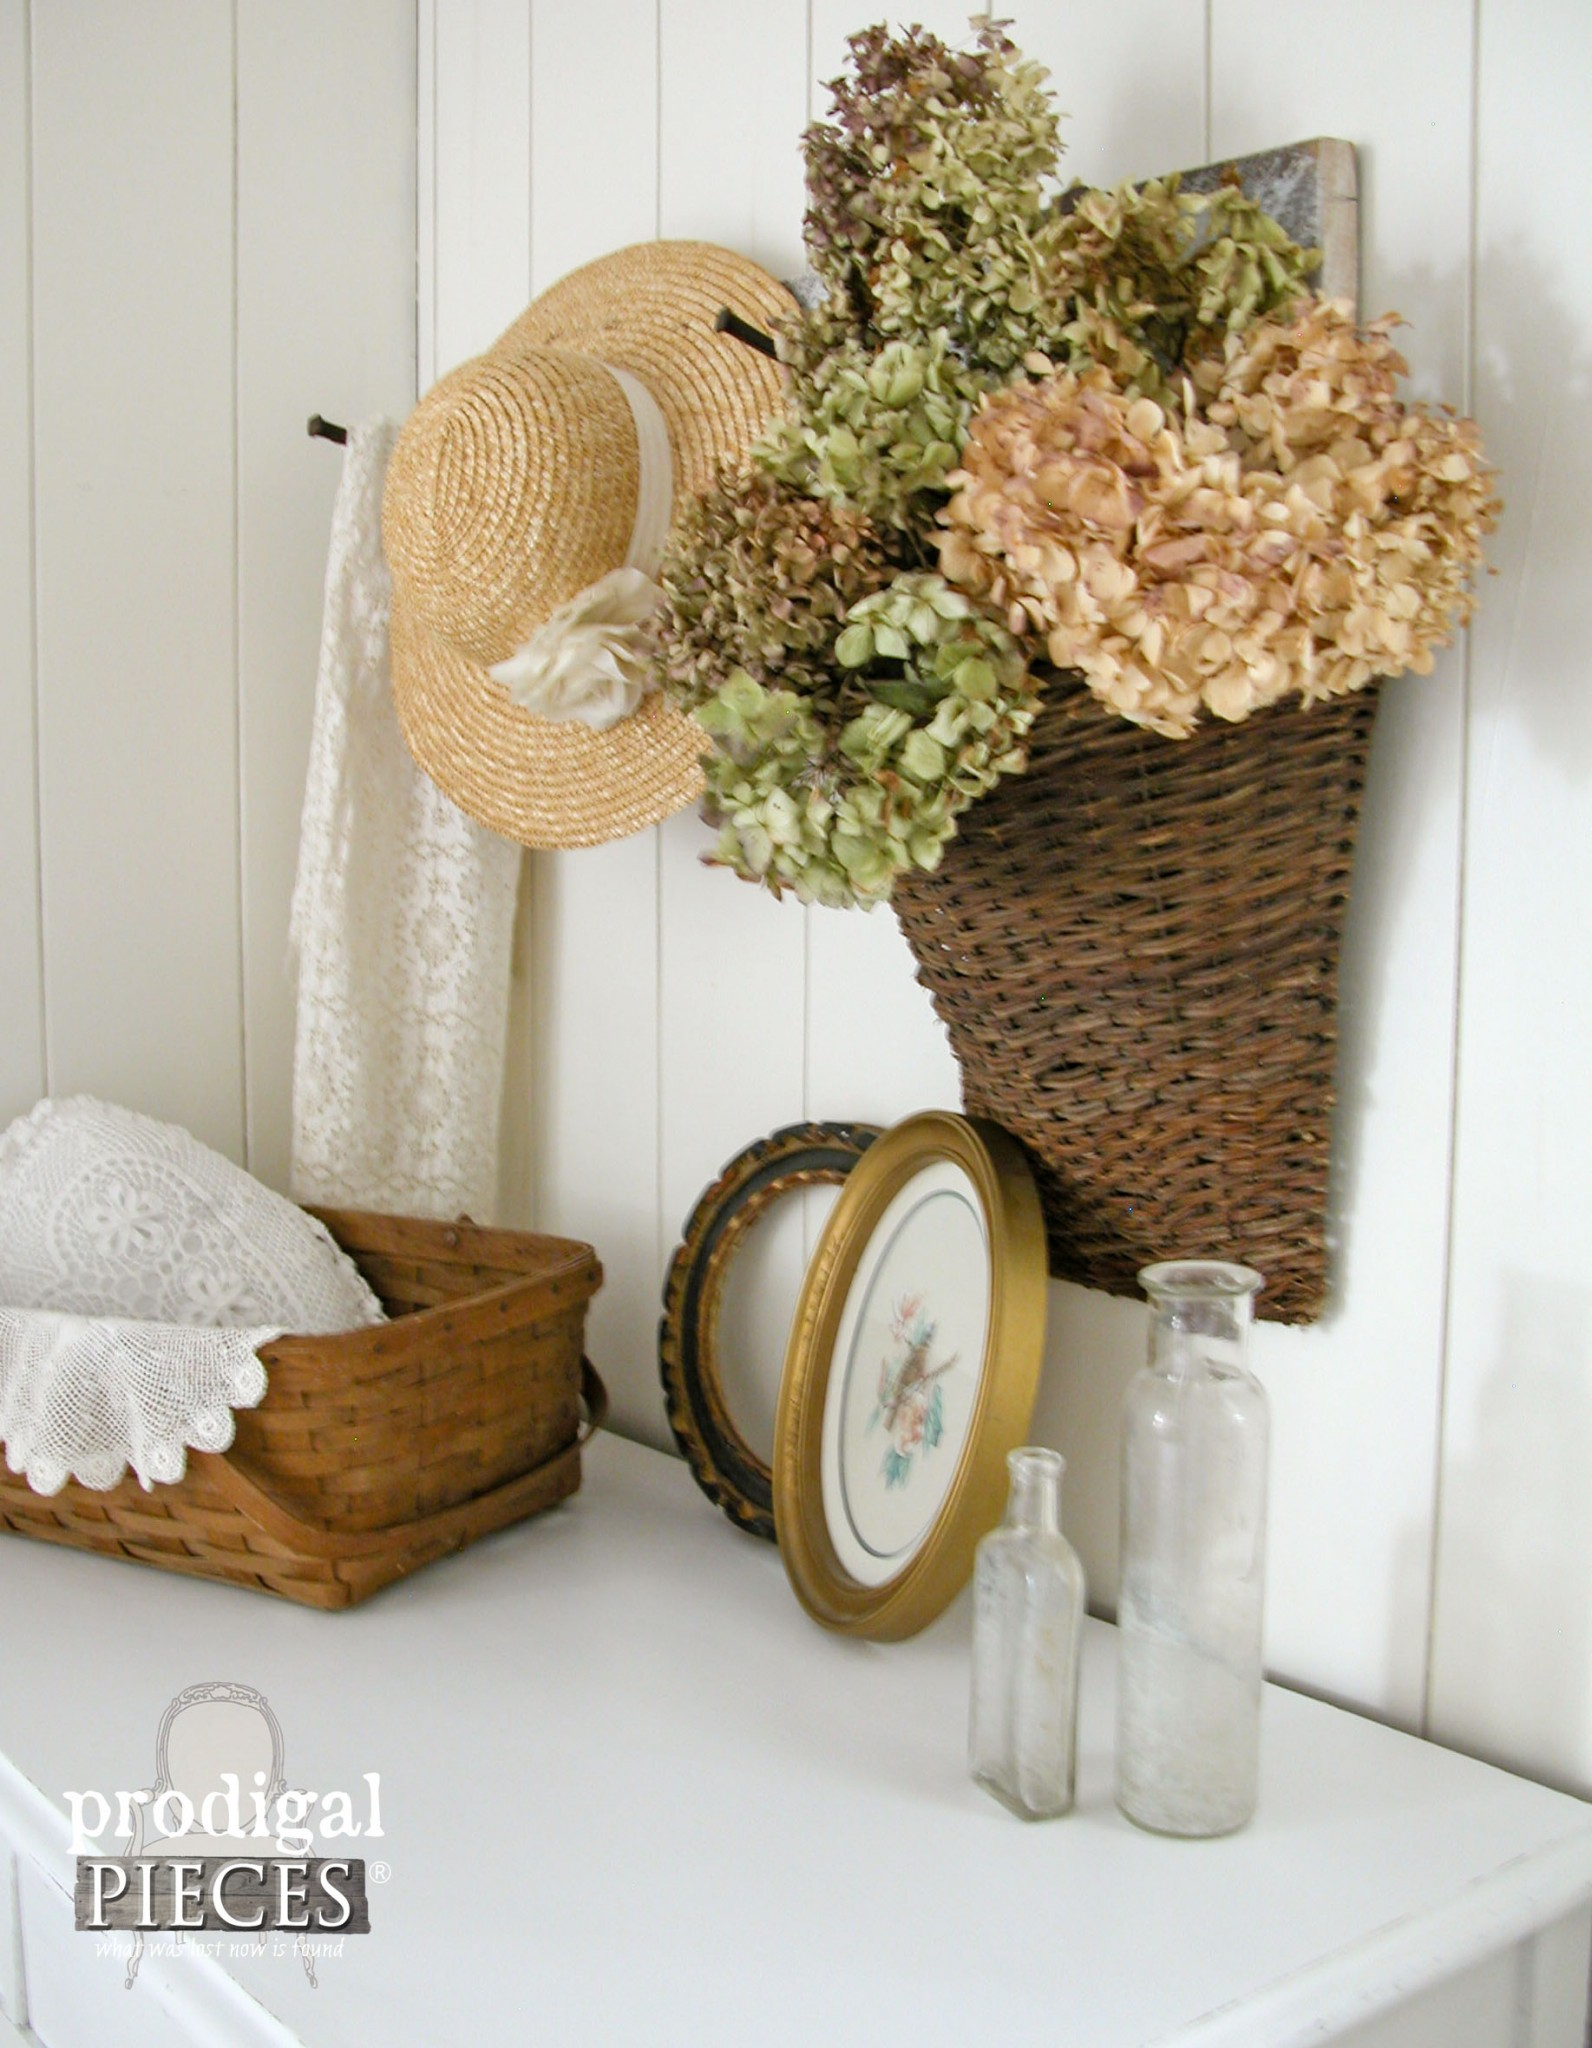 Simple Farmhouse Vignette with Flea Market Finds and Dried Hydrangeas by Prodigal Pieces | www.prodigalpieces.com